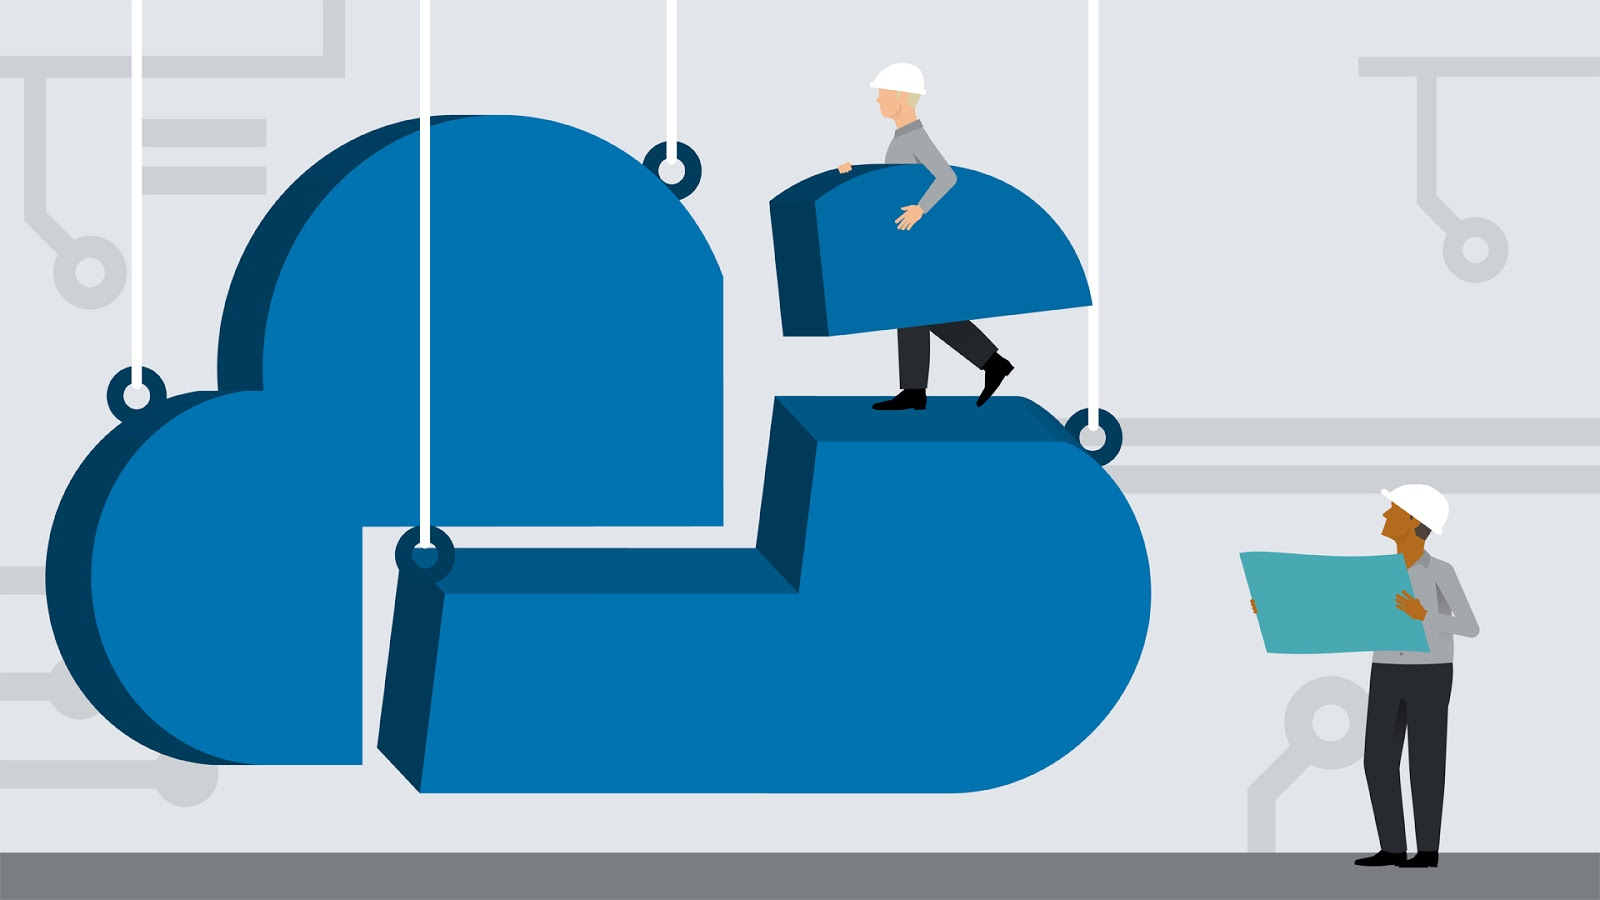 Affordability of Cloud Architecture will Move Up the Priority List